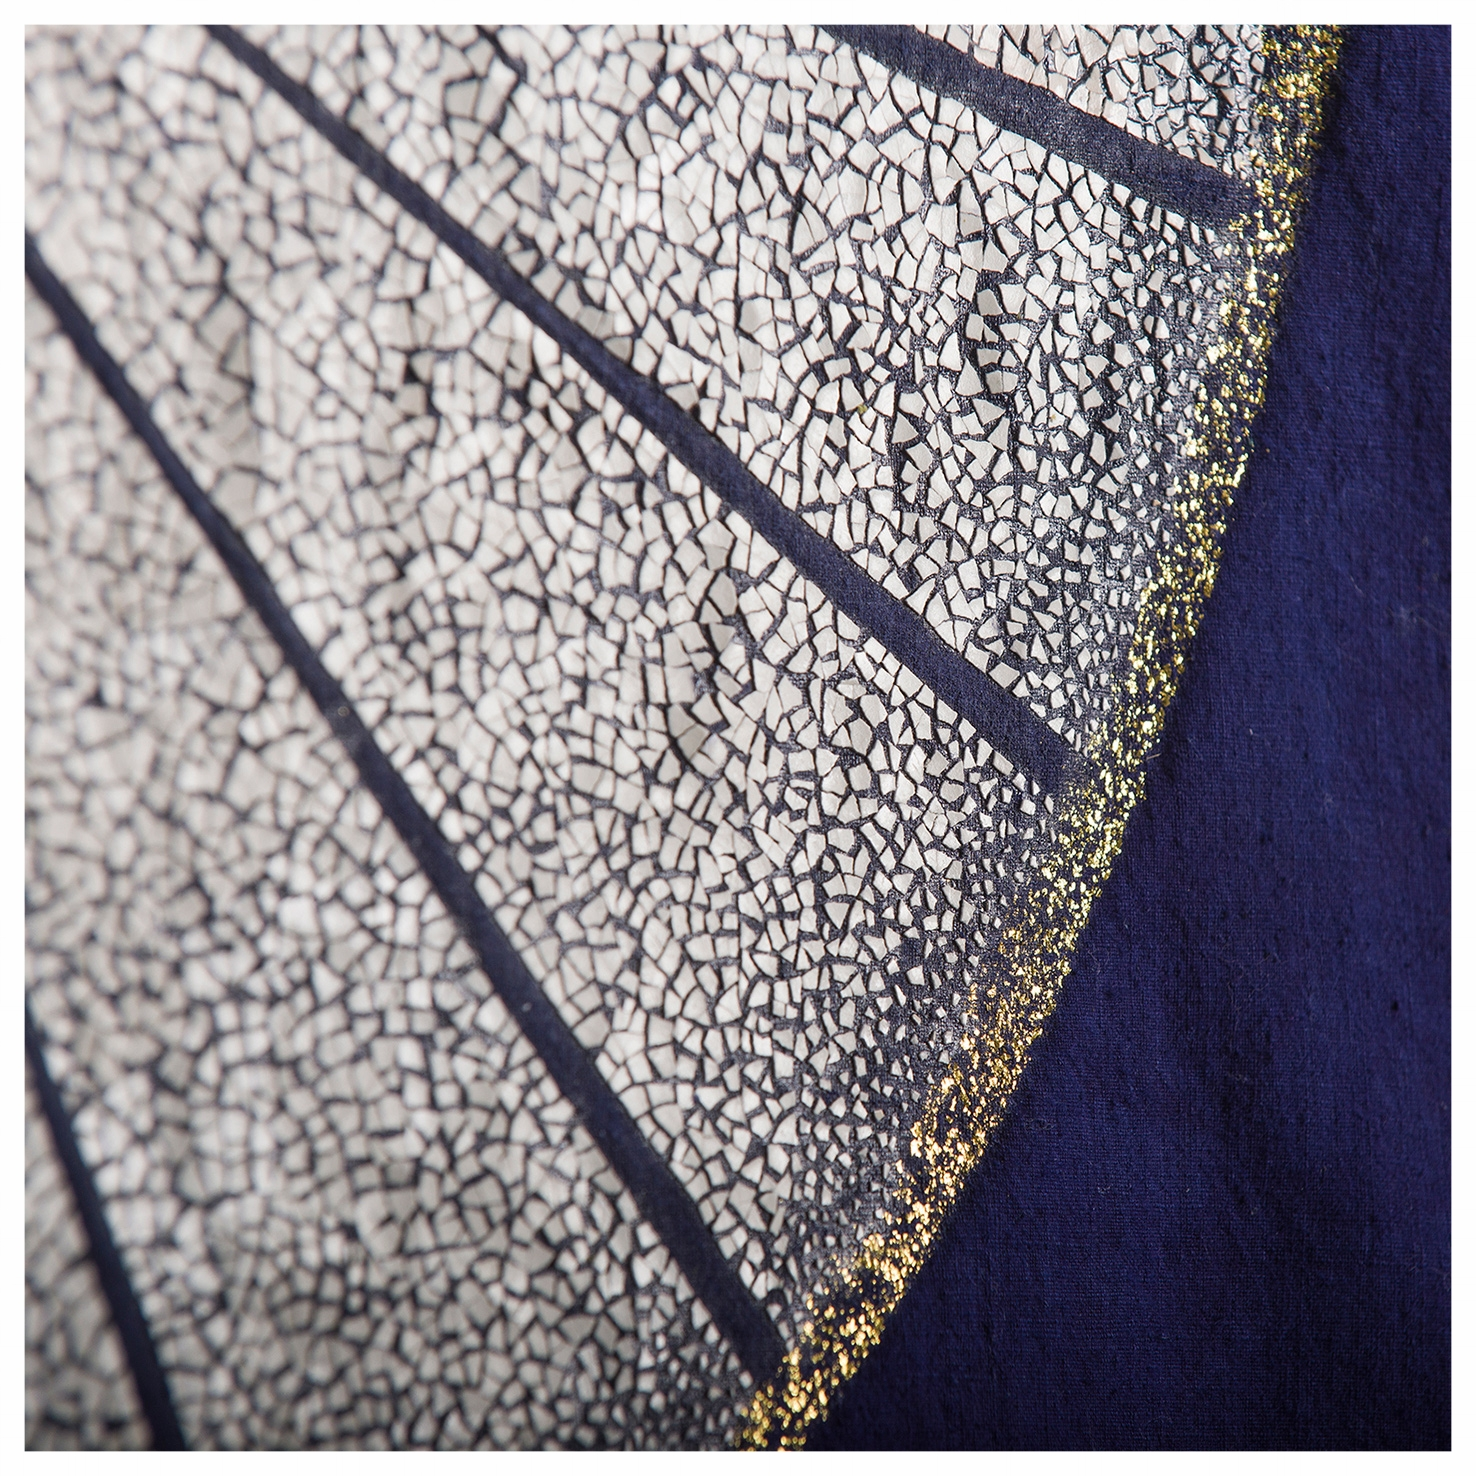 Moonrise - Indigo fabric from China with gold leaves and eggshells - Size : 90 x  120 cm